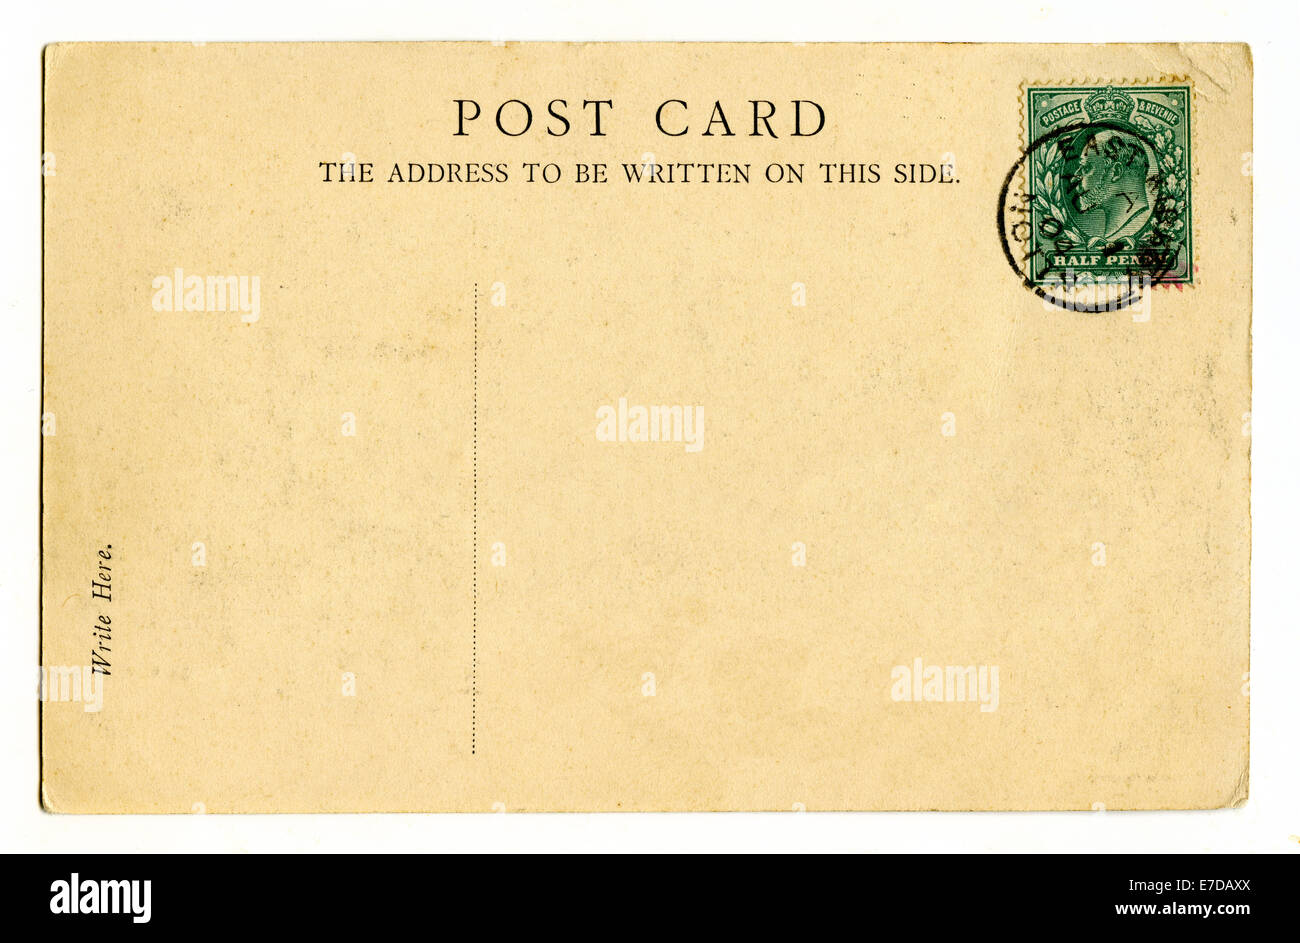 A vintage postcard over a plain white background. - Stock Image